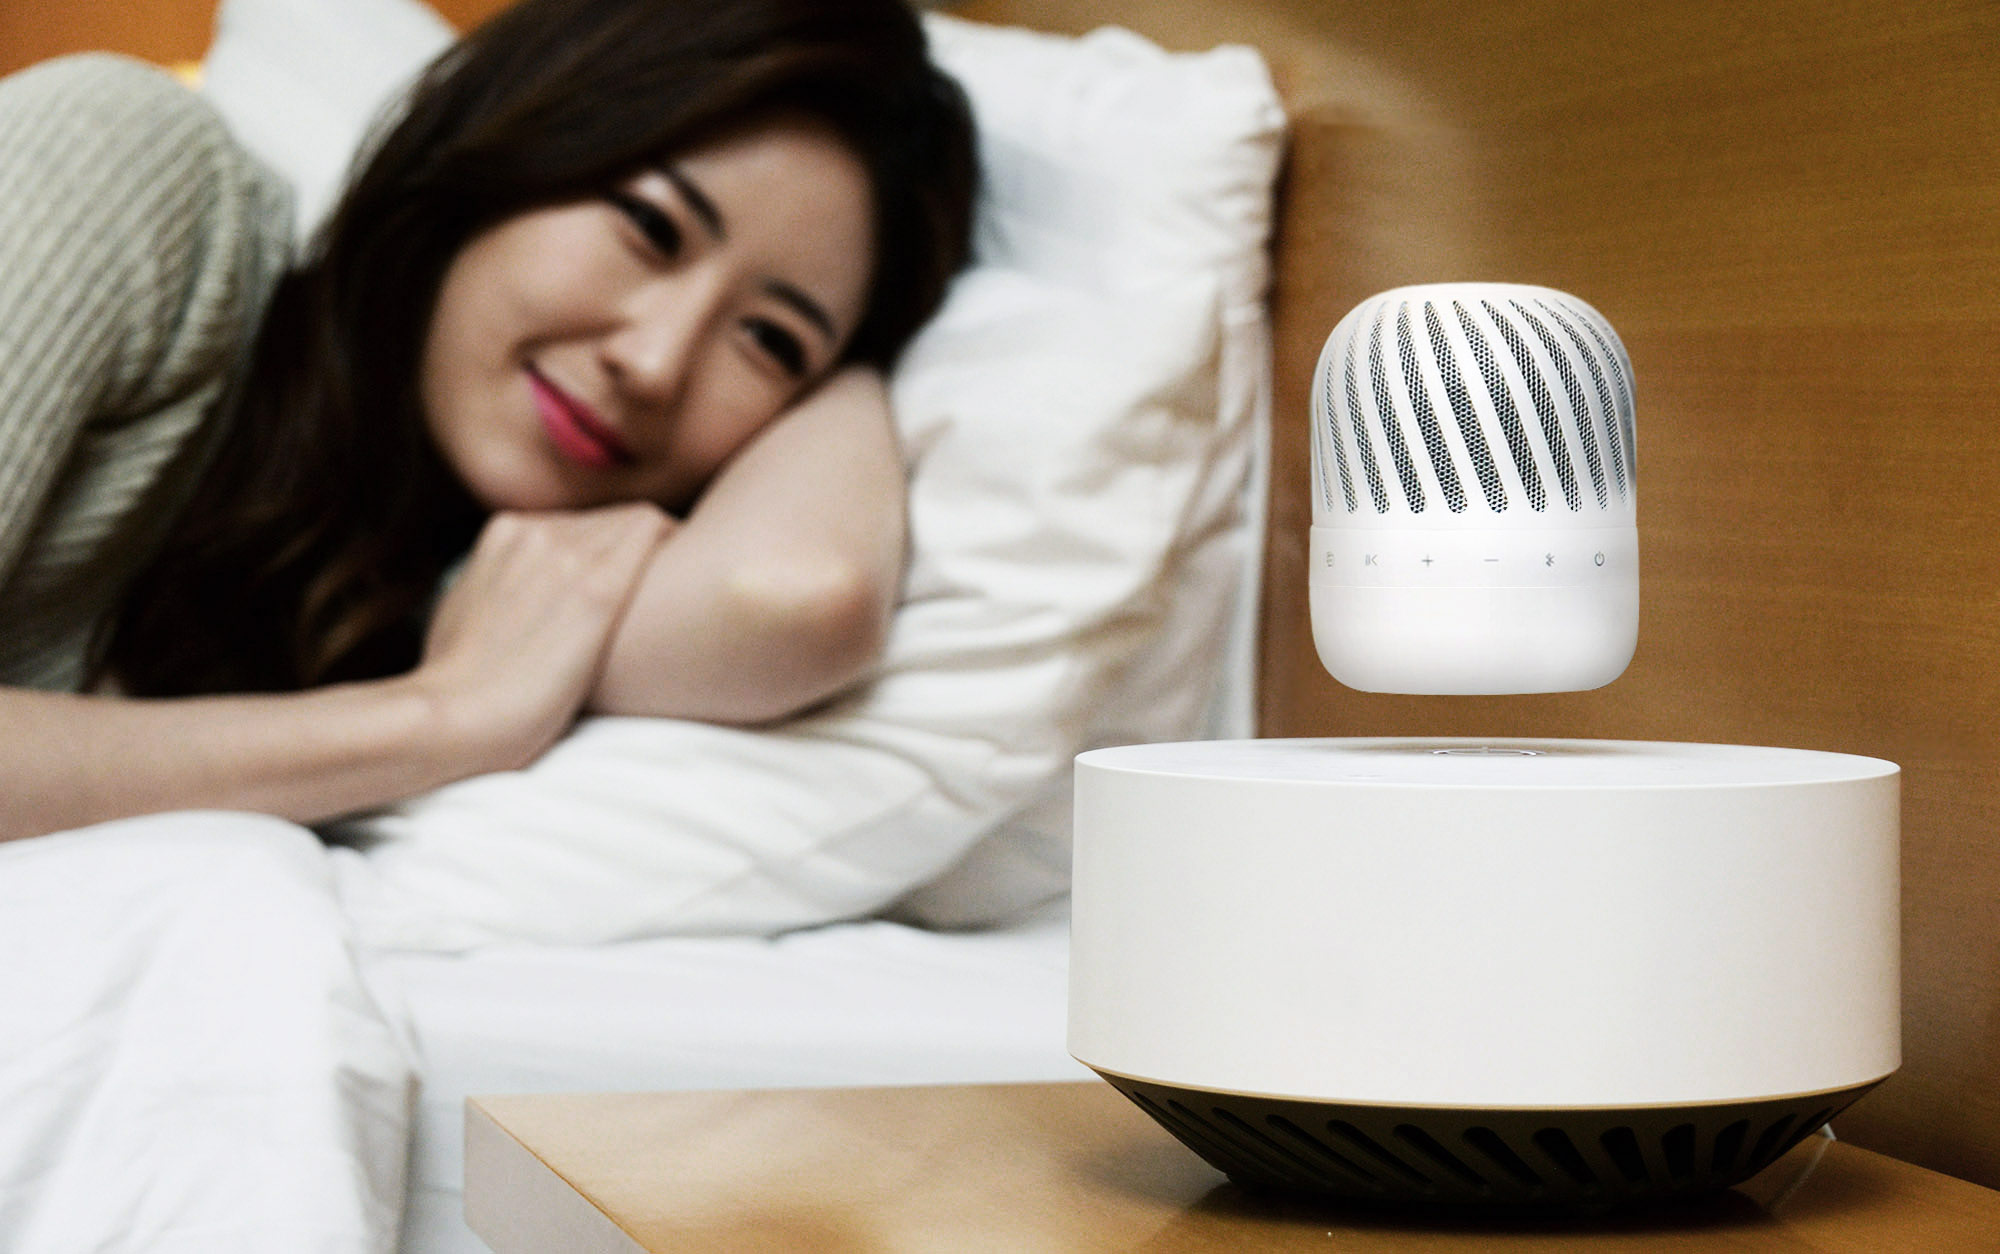 LG Takes Portable Speaker Tech To New Heights With Levitating PJ9